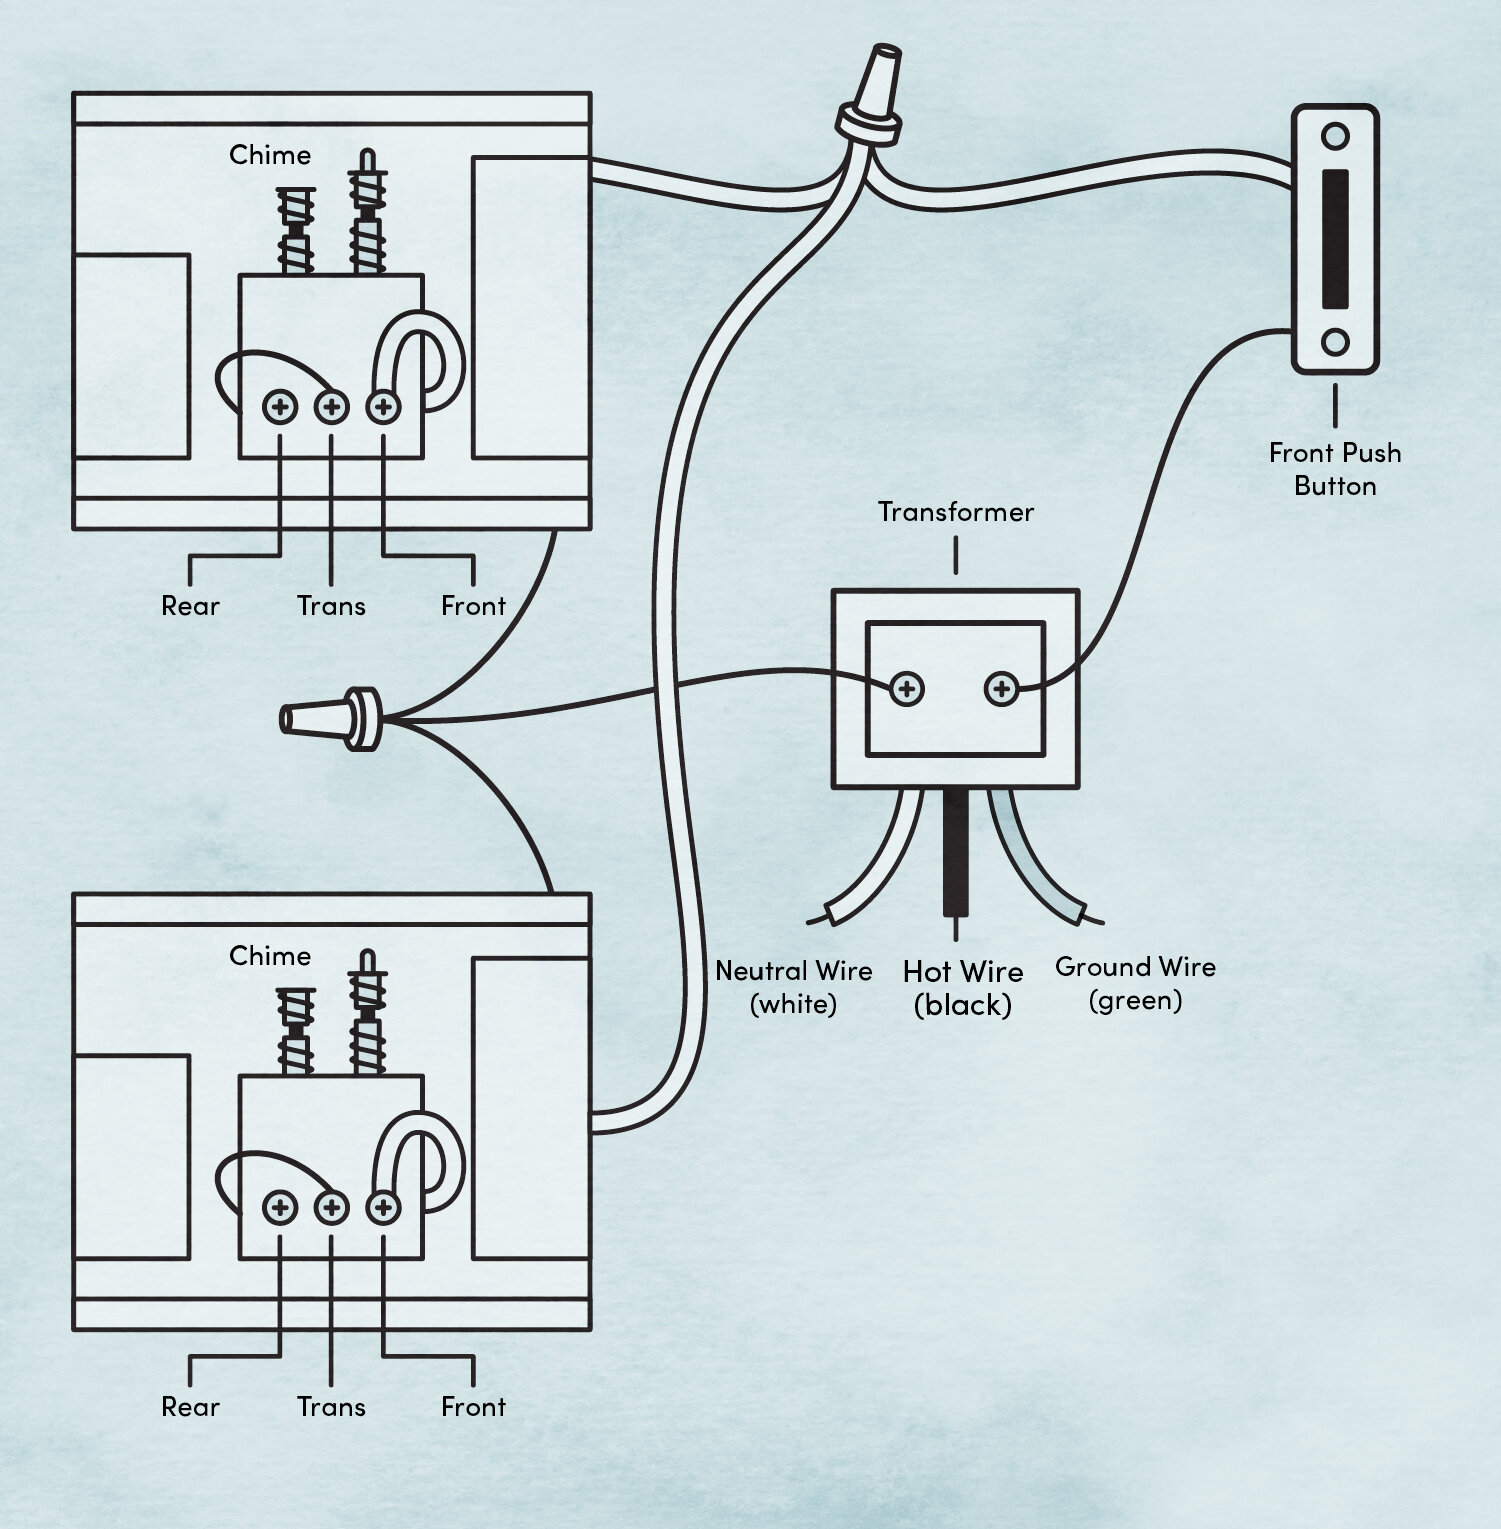 drill master wiring diagram how to doorbell wiring for beginners wayfair  how to doorbell wiring for beginners